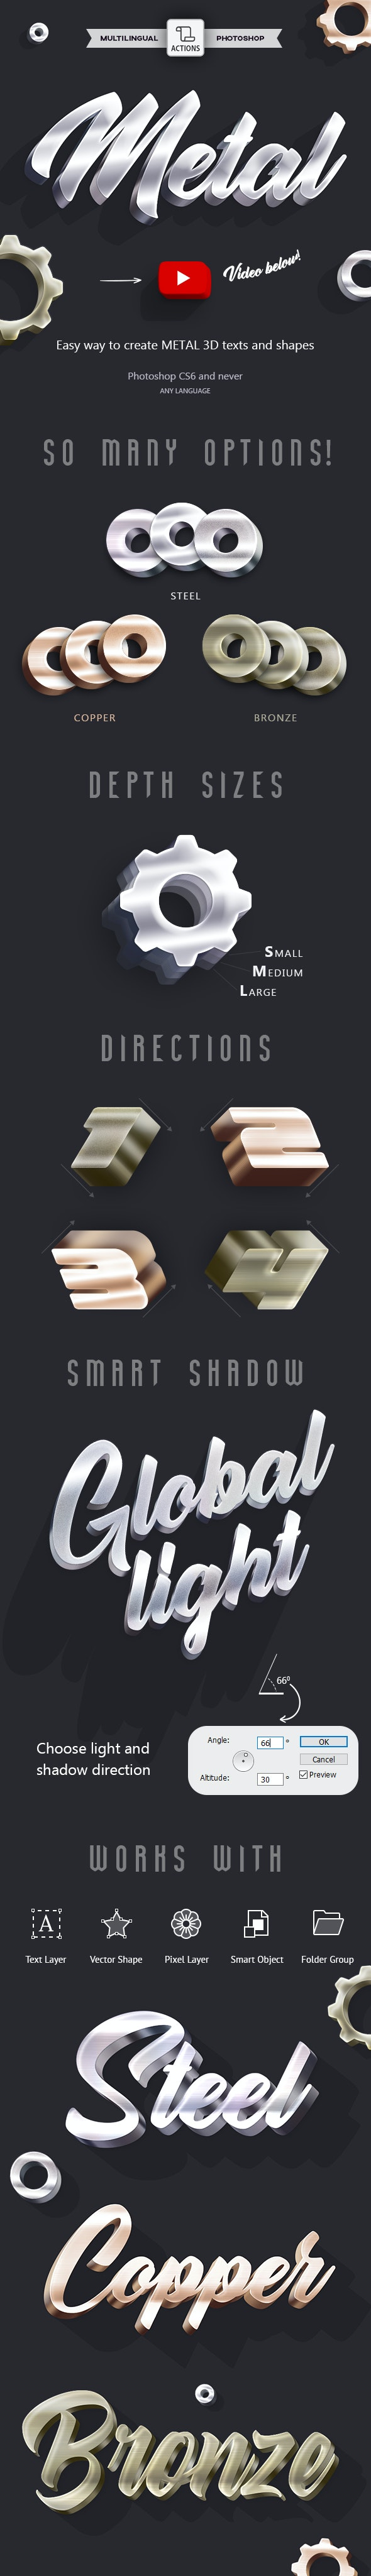 3D Metal - Photoshop Action - Text Effects Actions